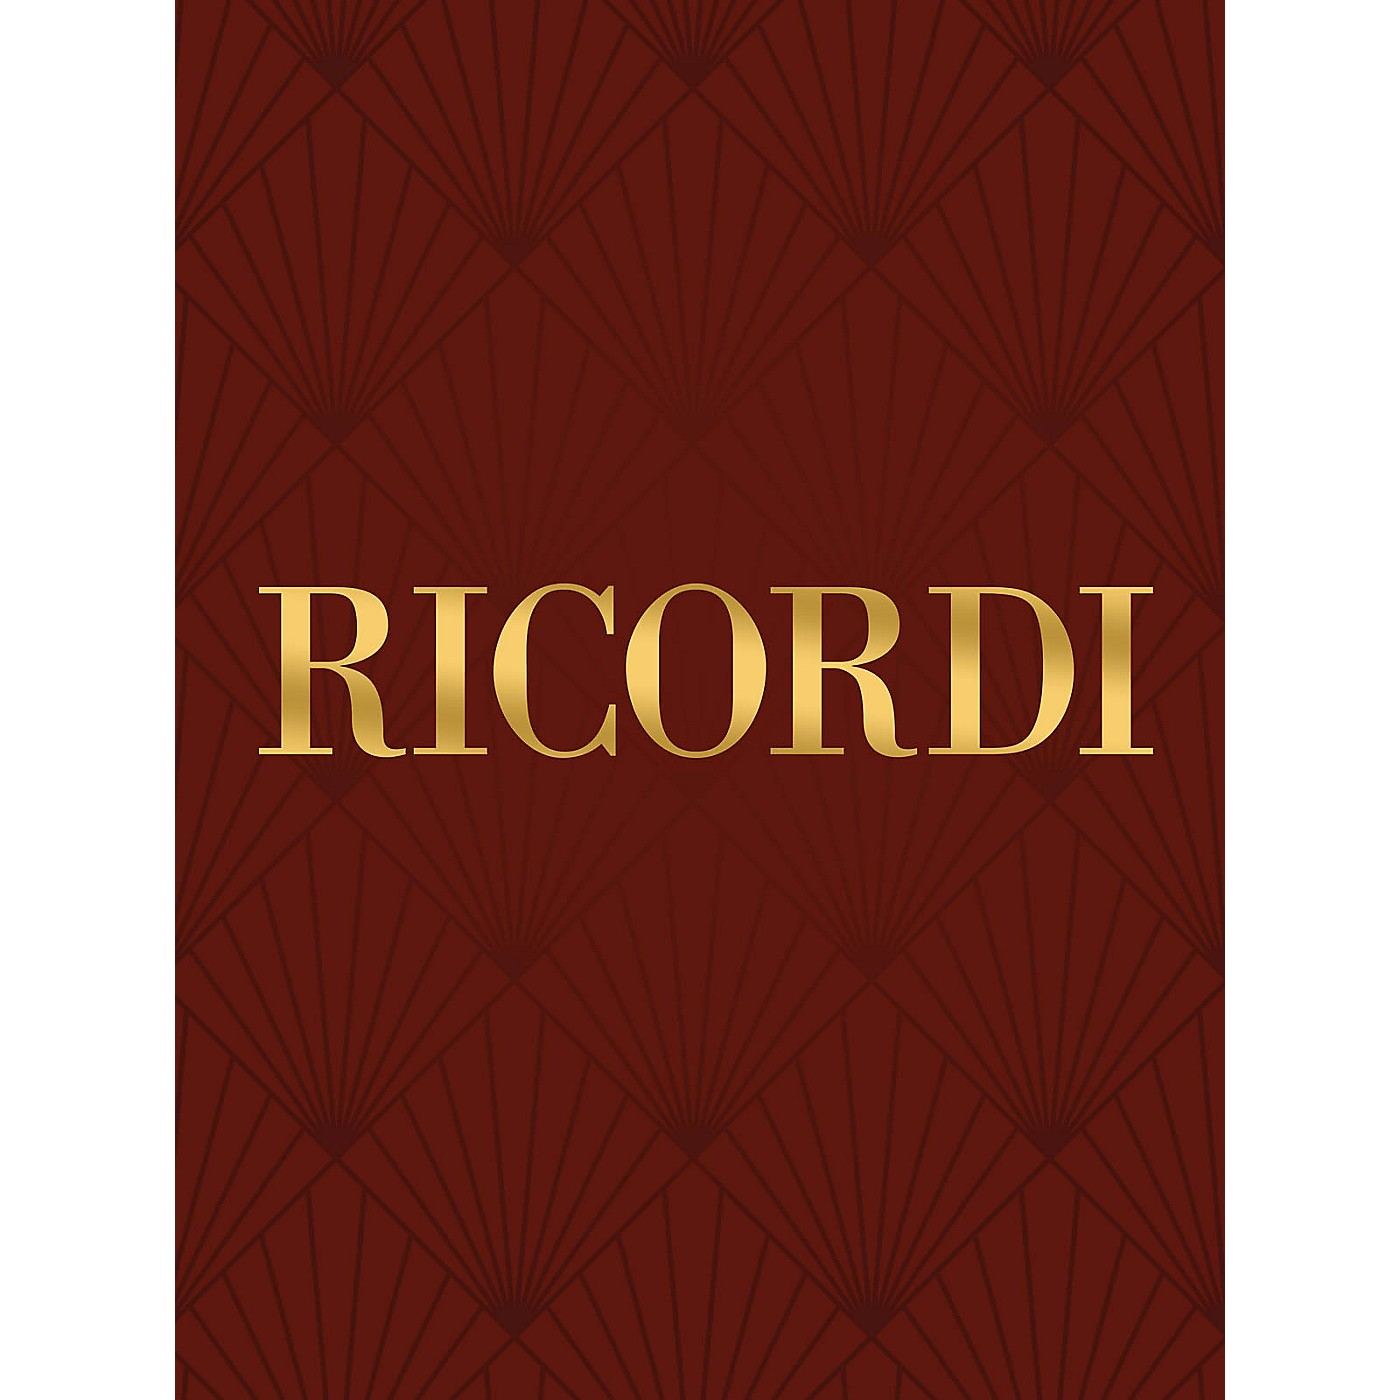 Ricordi 6 Grand Sonatas in the Form of Duets 2 bassoons Woodwind Ensemble  by Etienne Ozi Edited by Enzo Muccetti thumbnail